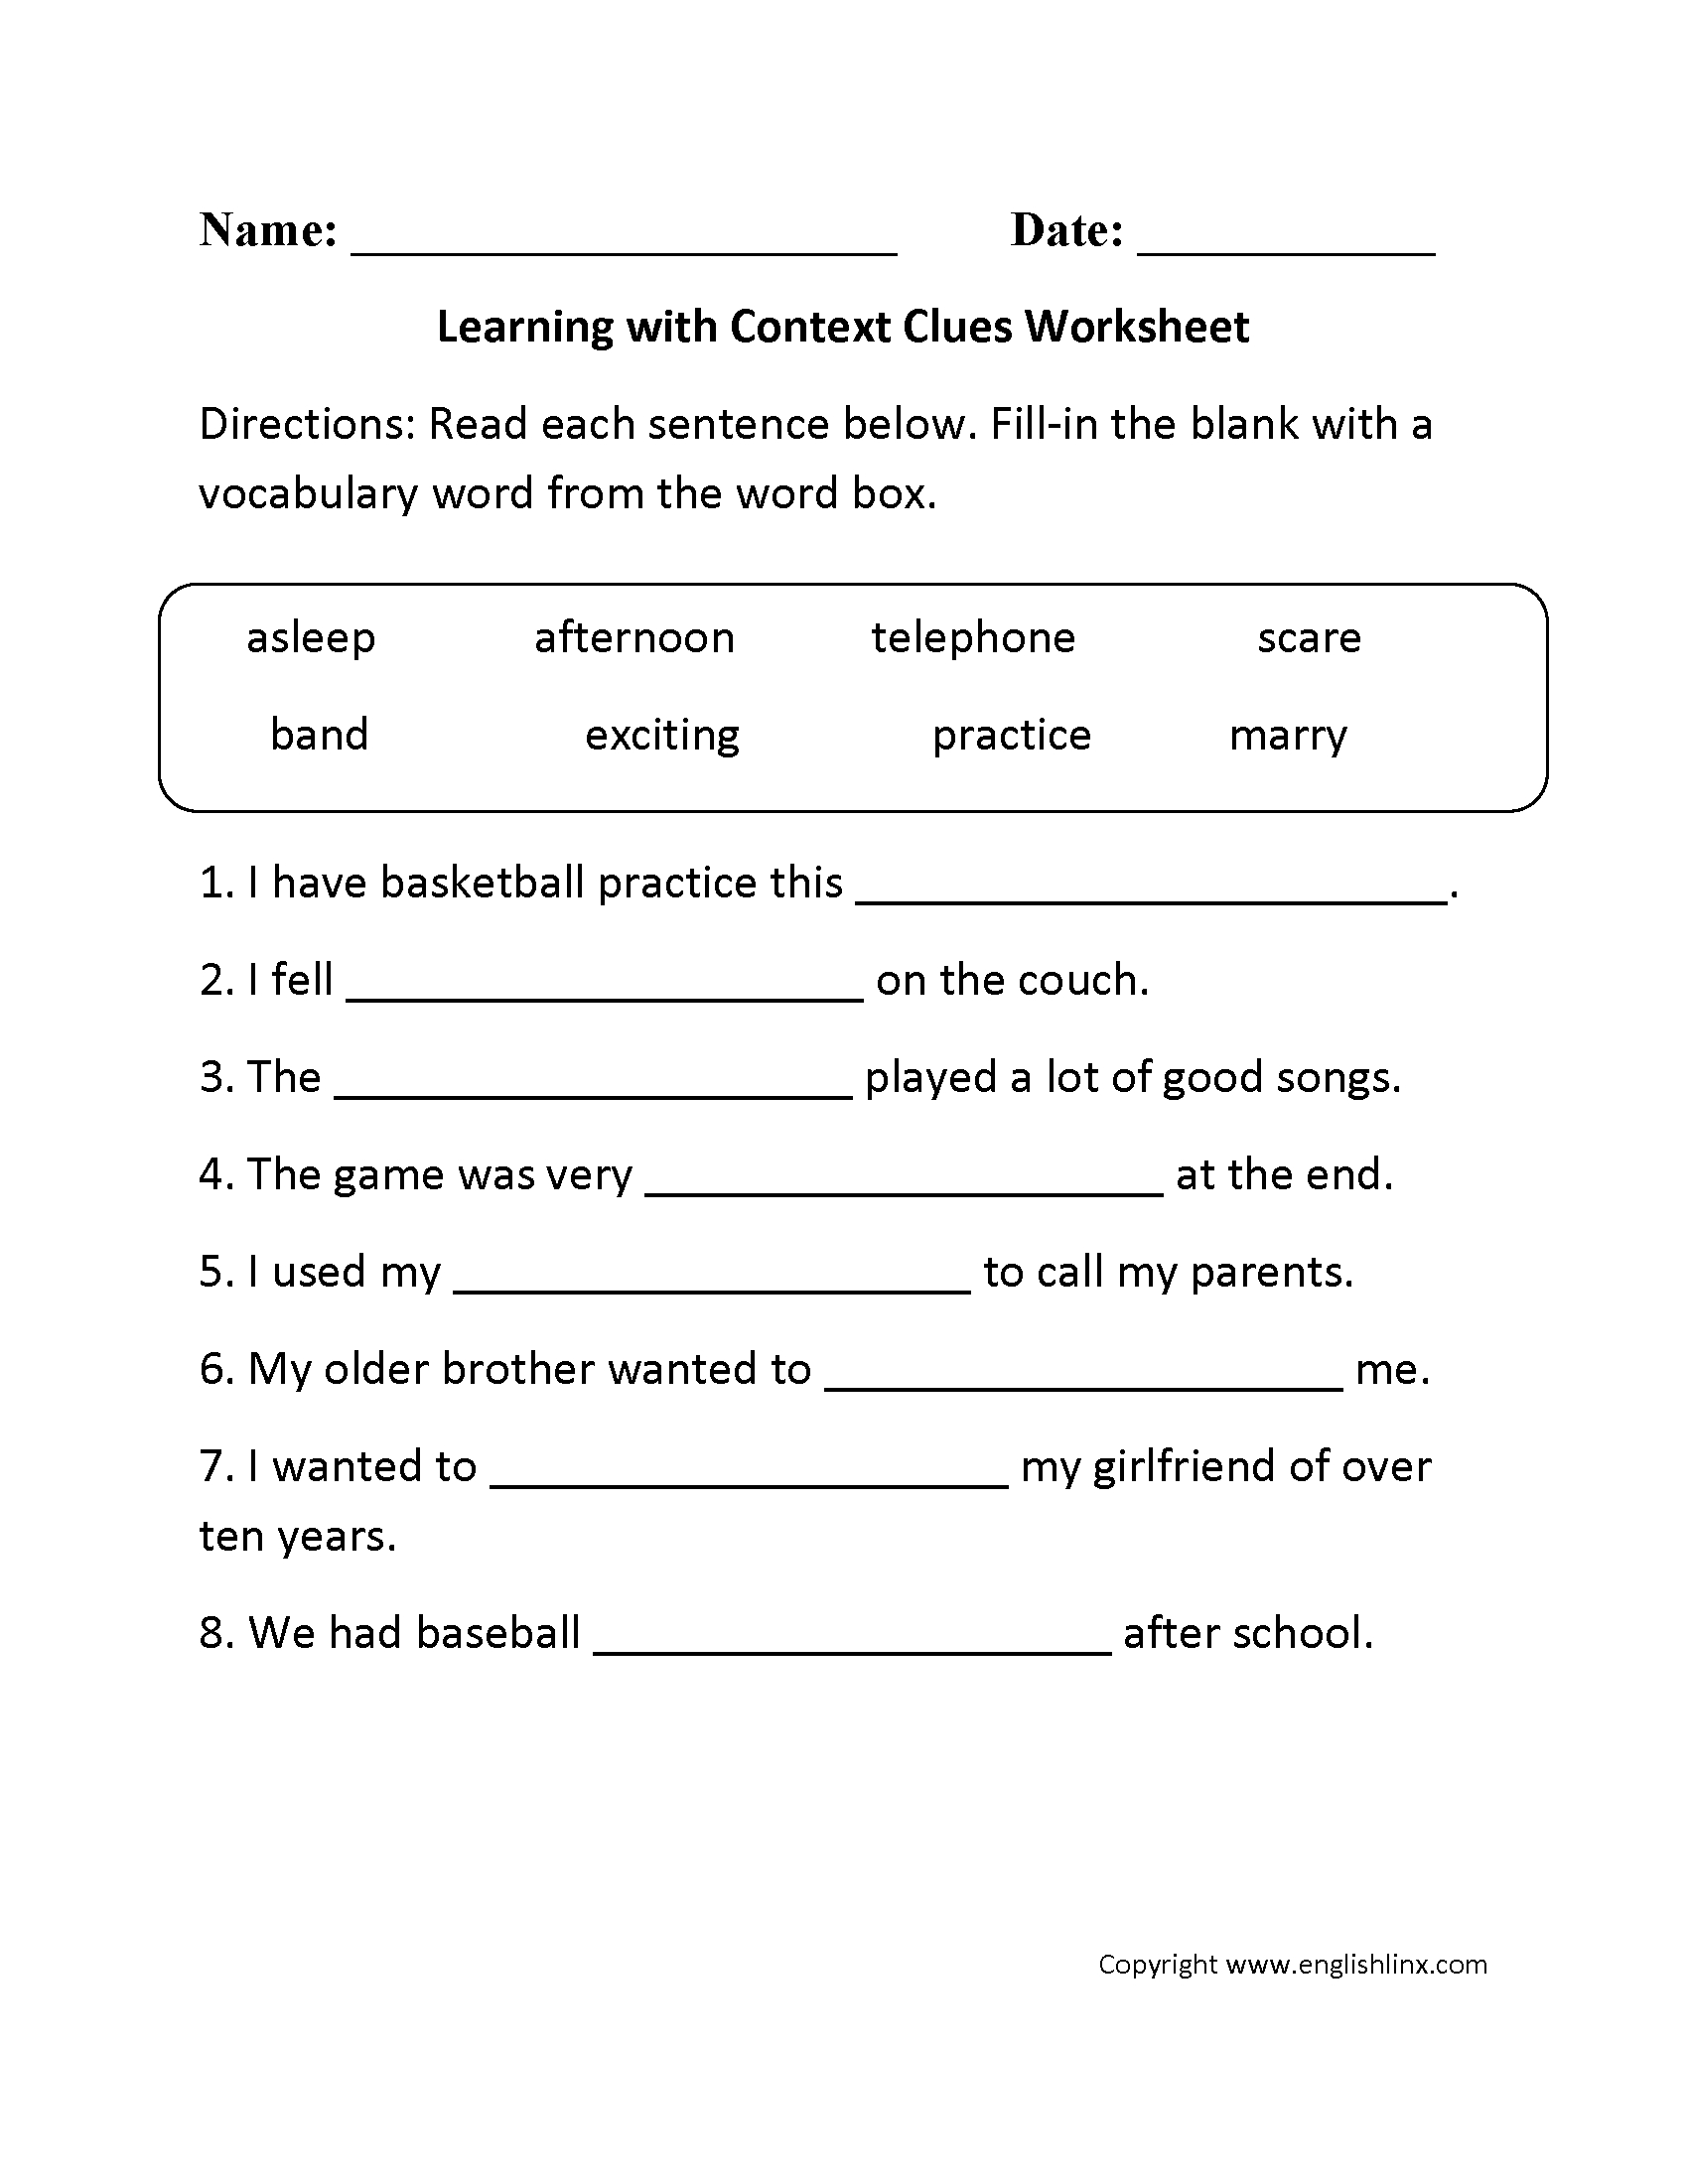 Context Clues Worksheets 5th Grade To Download